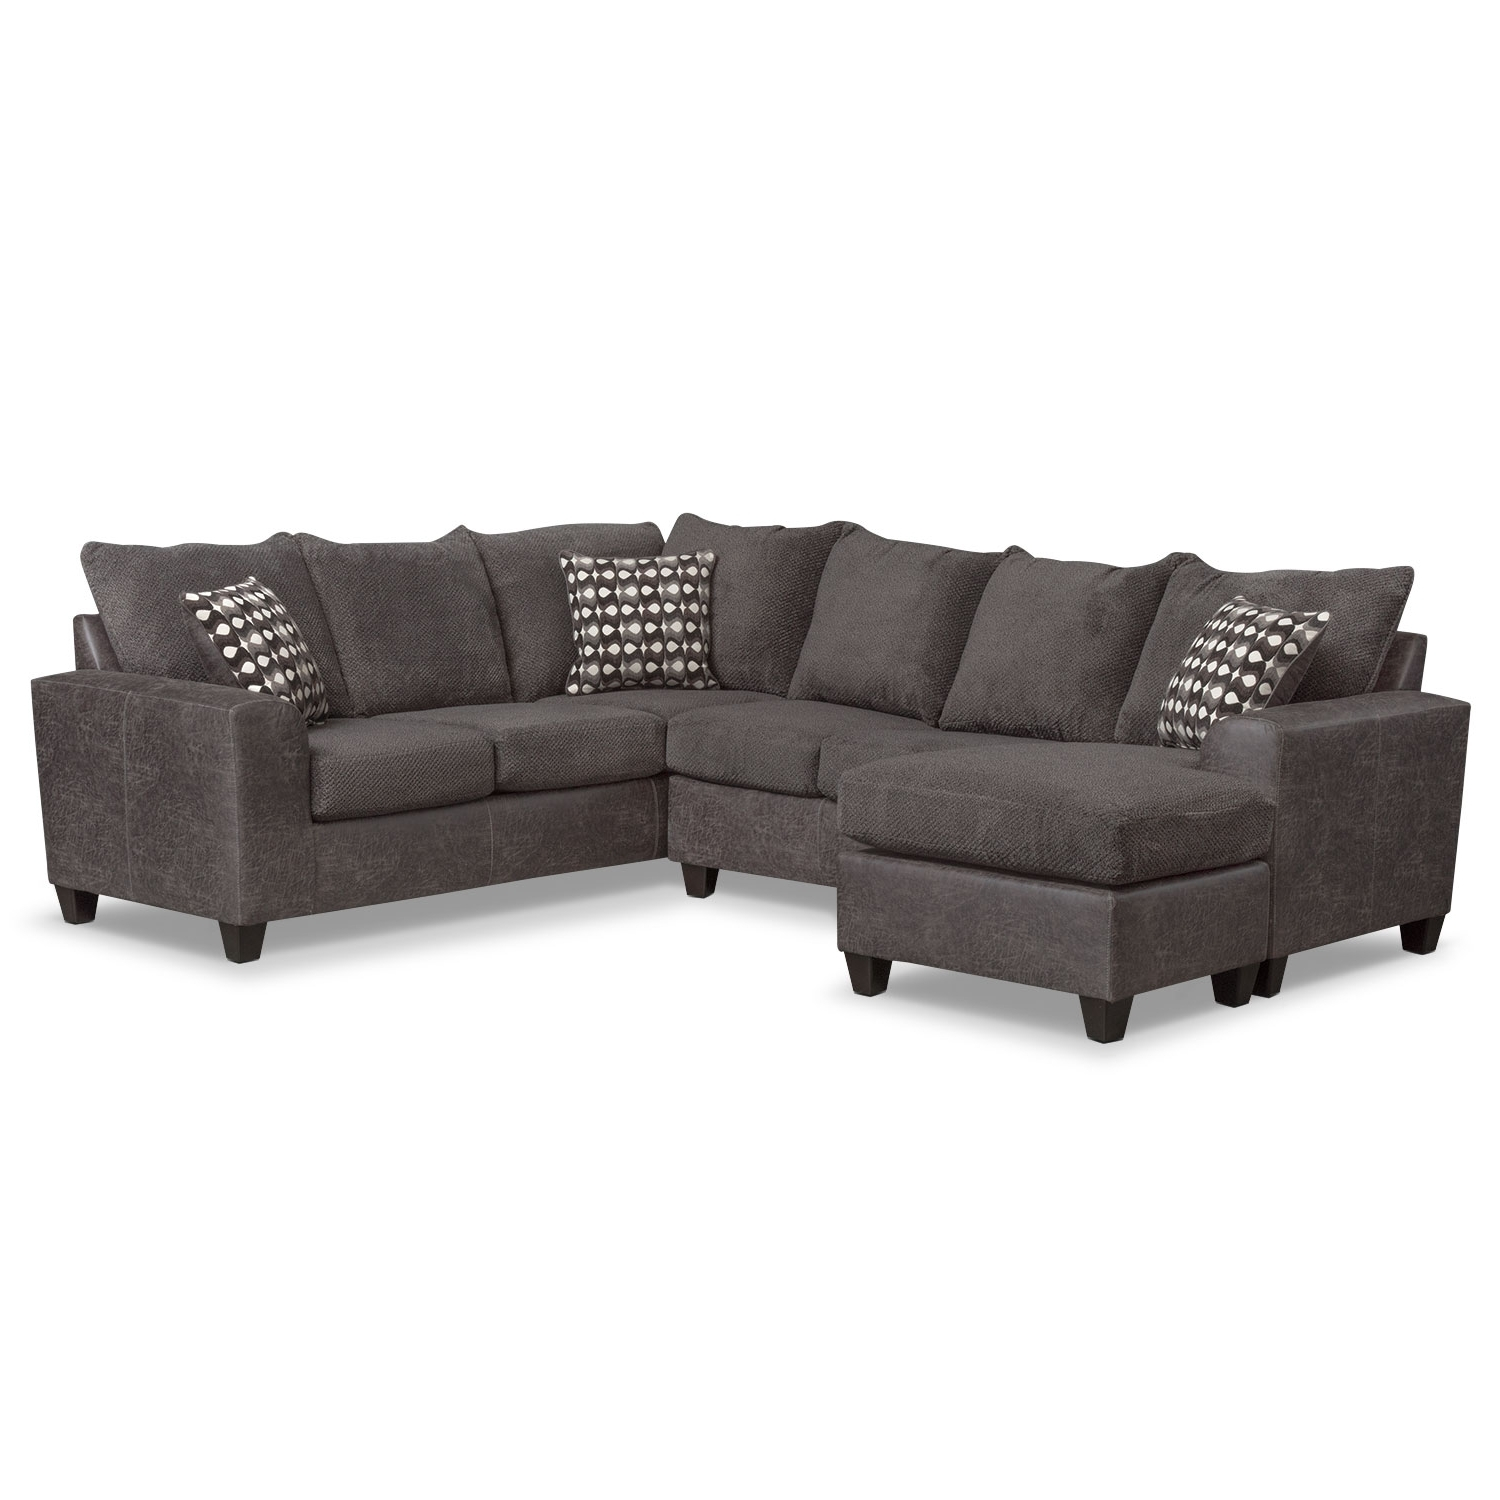 Value City Sectional Sofas For Famous Brando 3 Piece Sectional With Chaise And Swivel Chair Set – Smoke (Gallery 7 of 20)